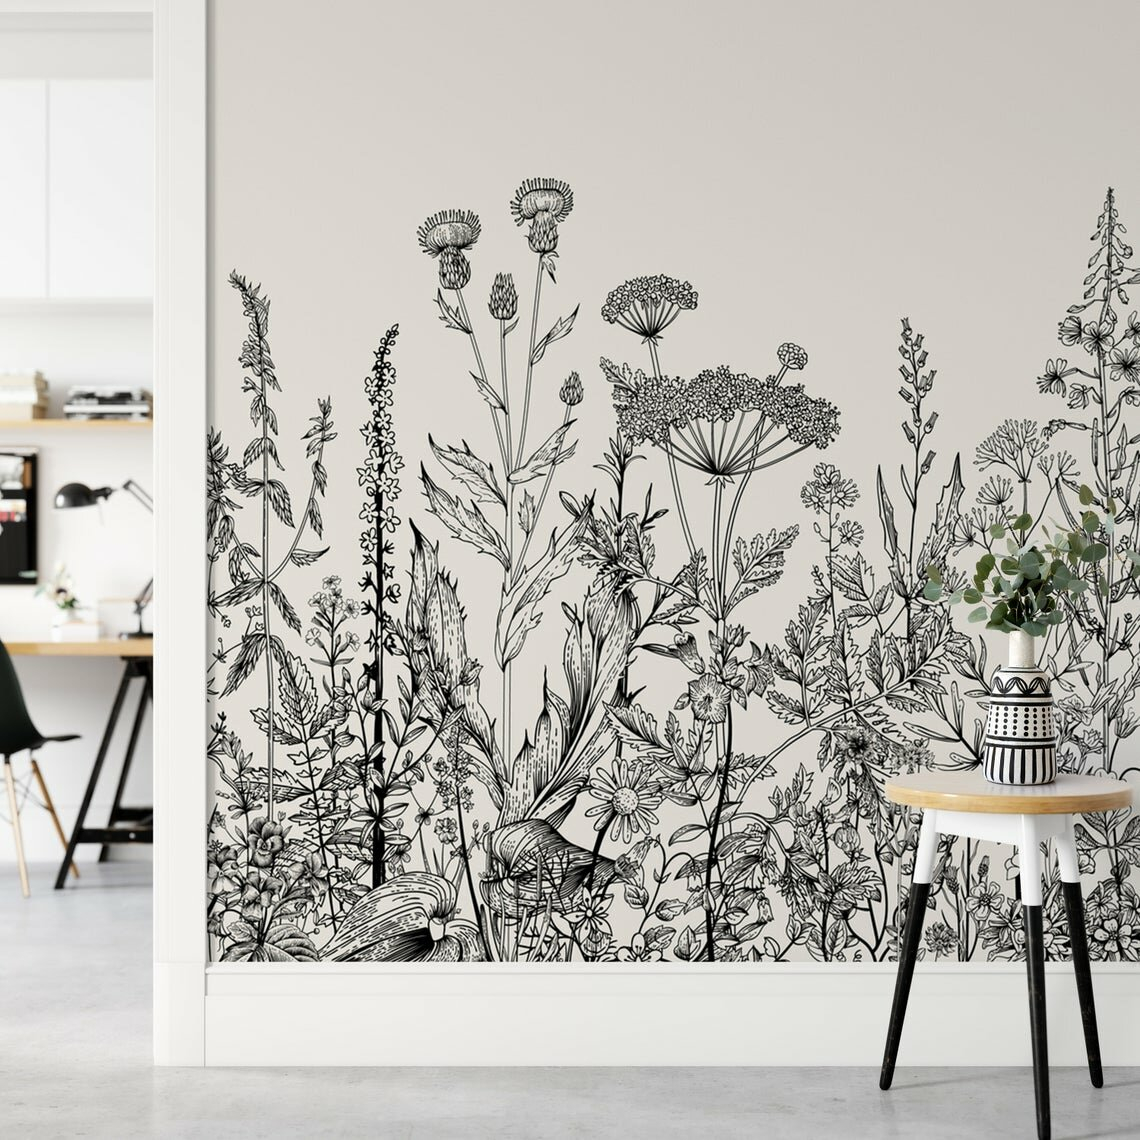 palmer garden plants flowers black and white removable textile wallpaper panel